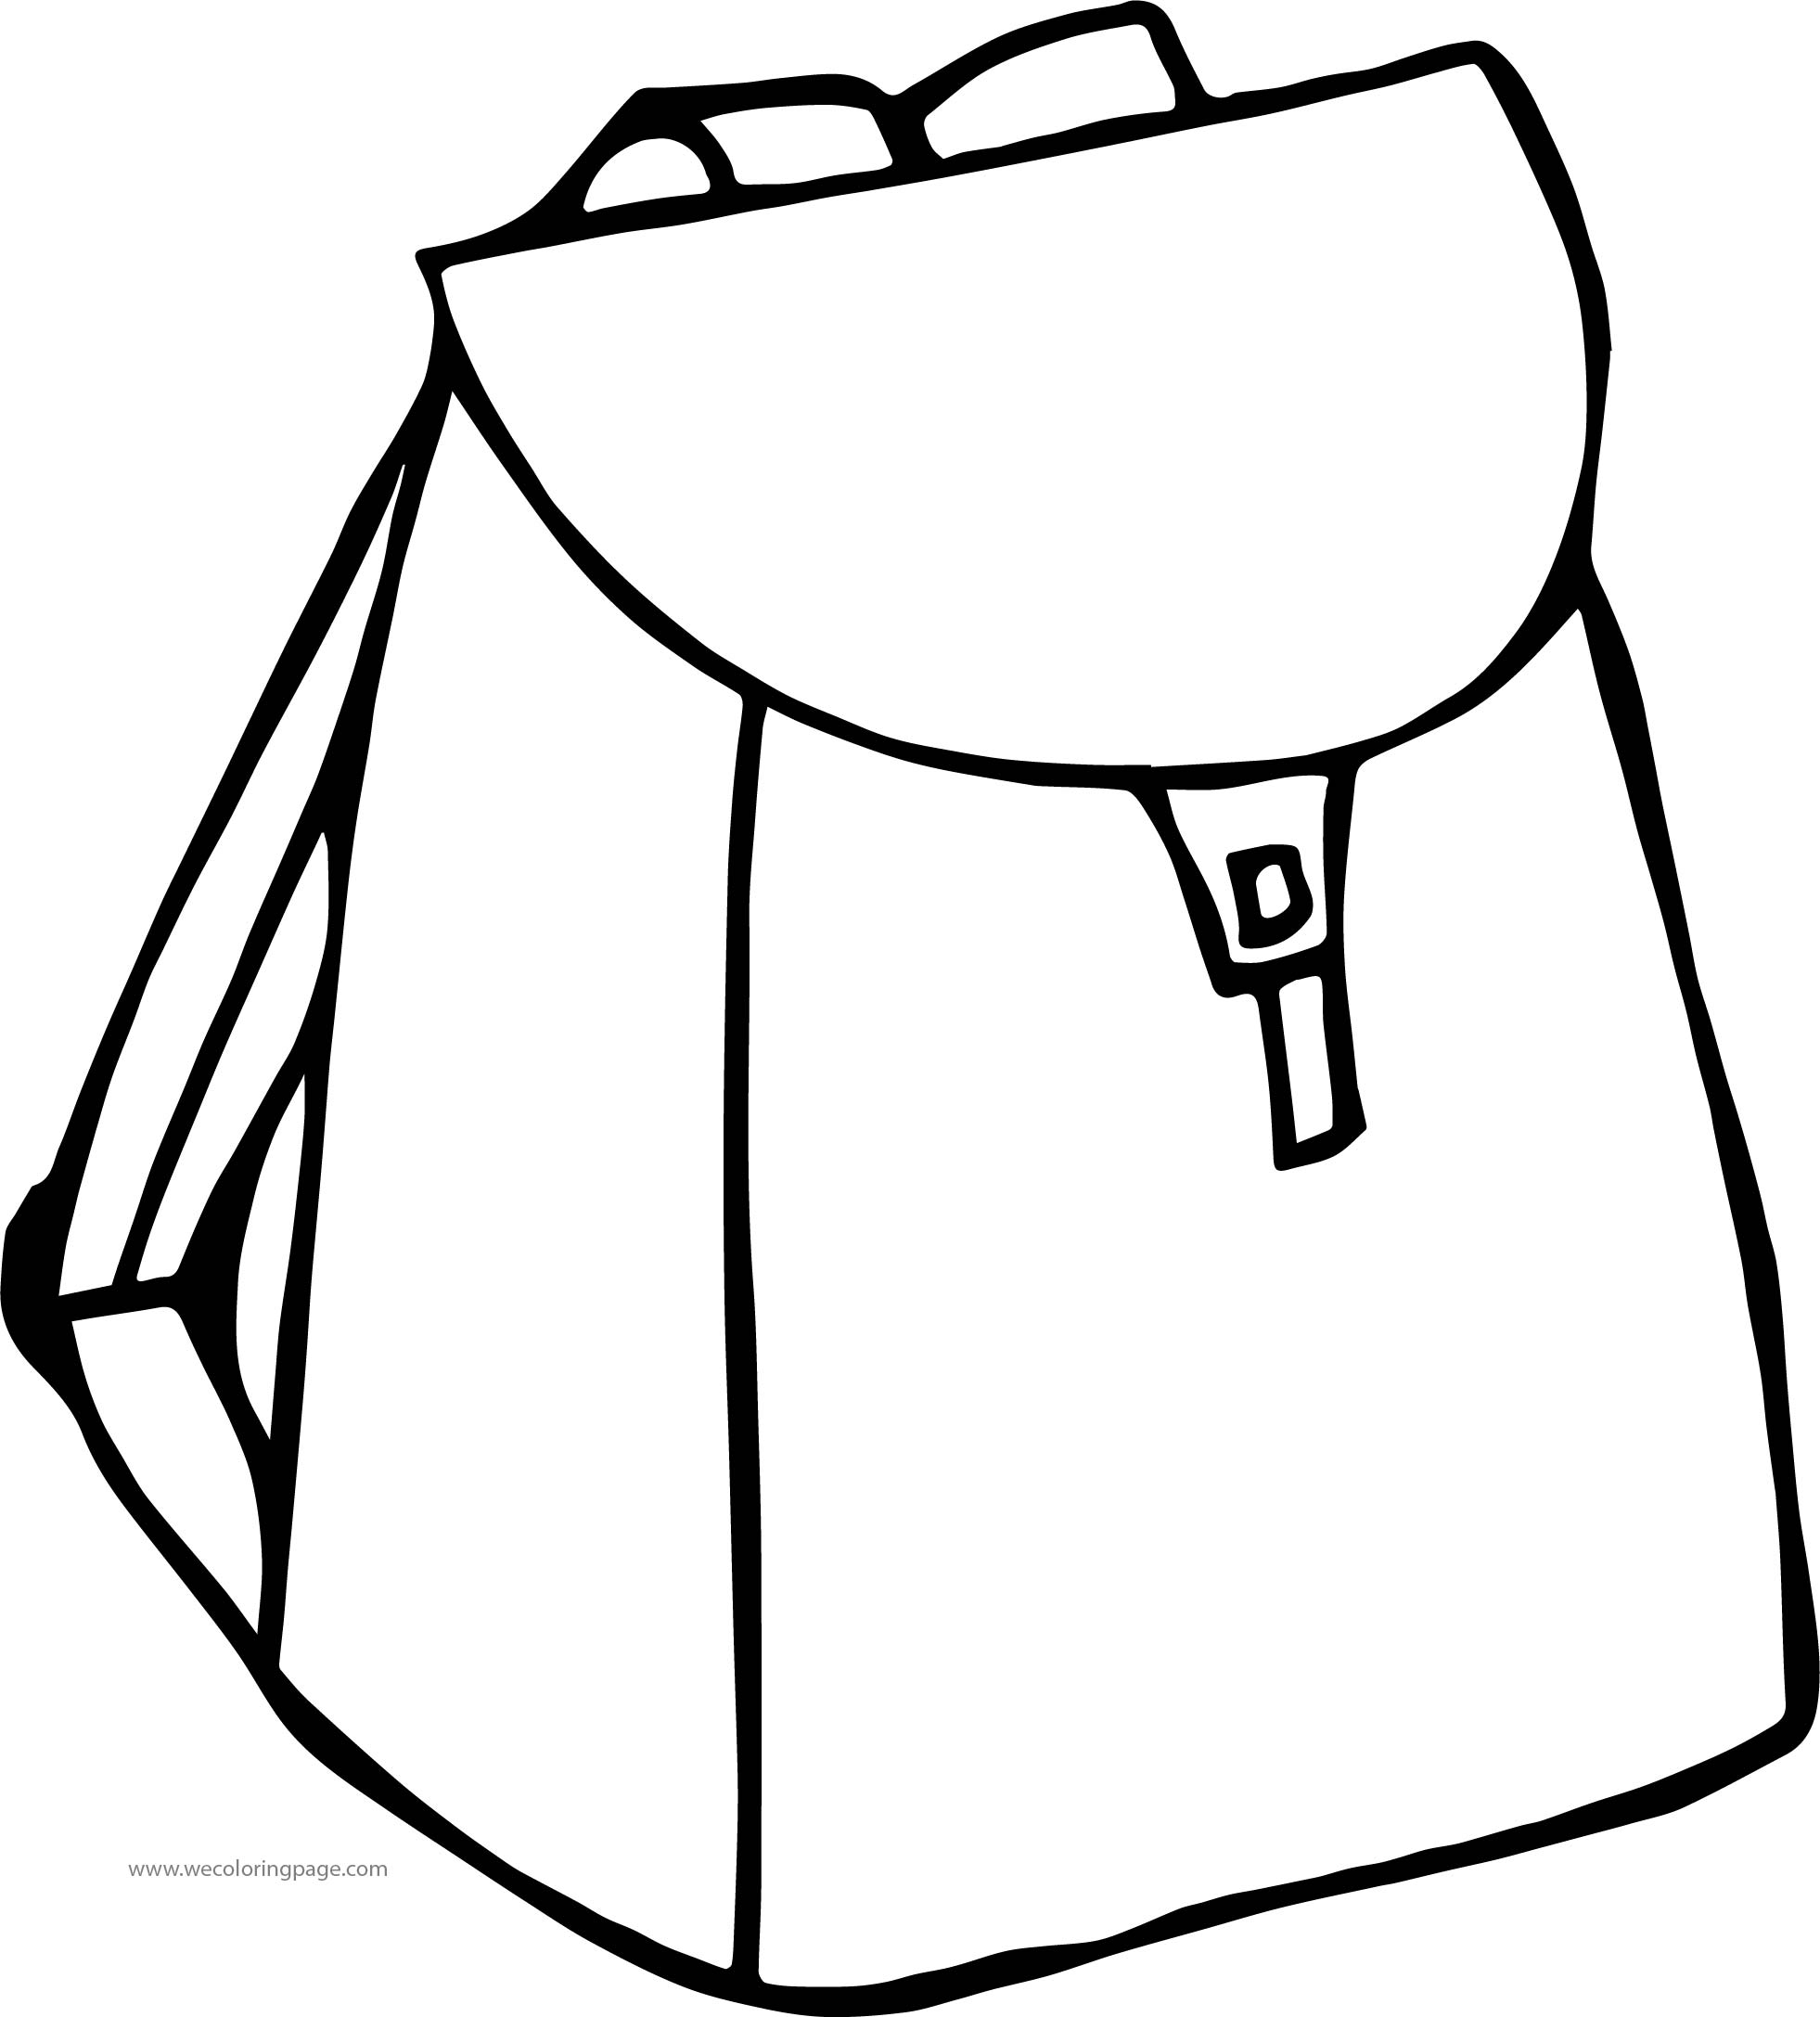 In School Bag Coloring Page